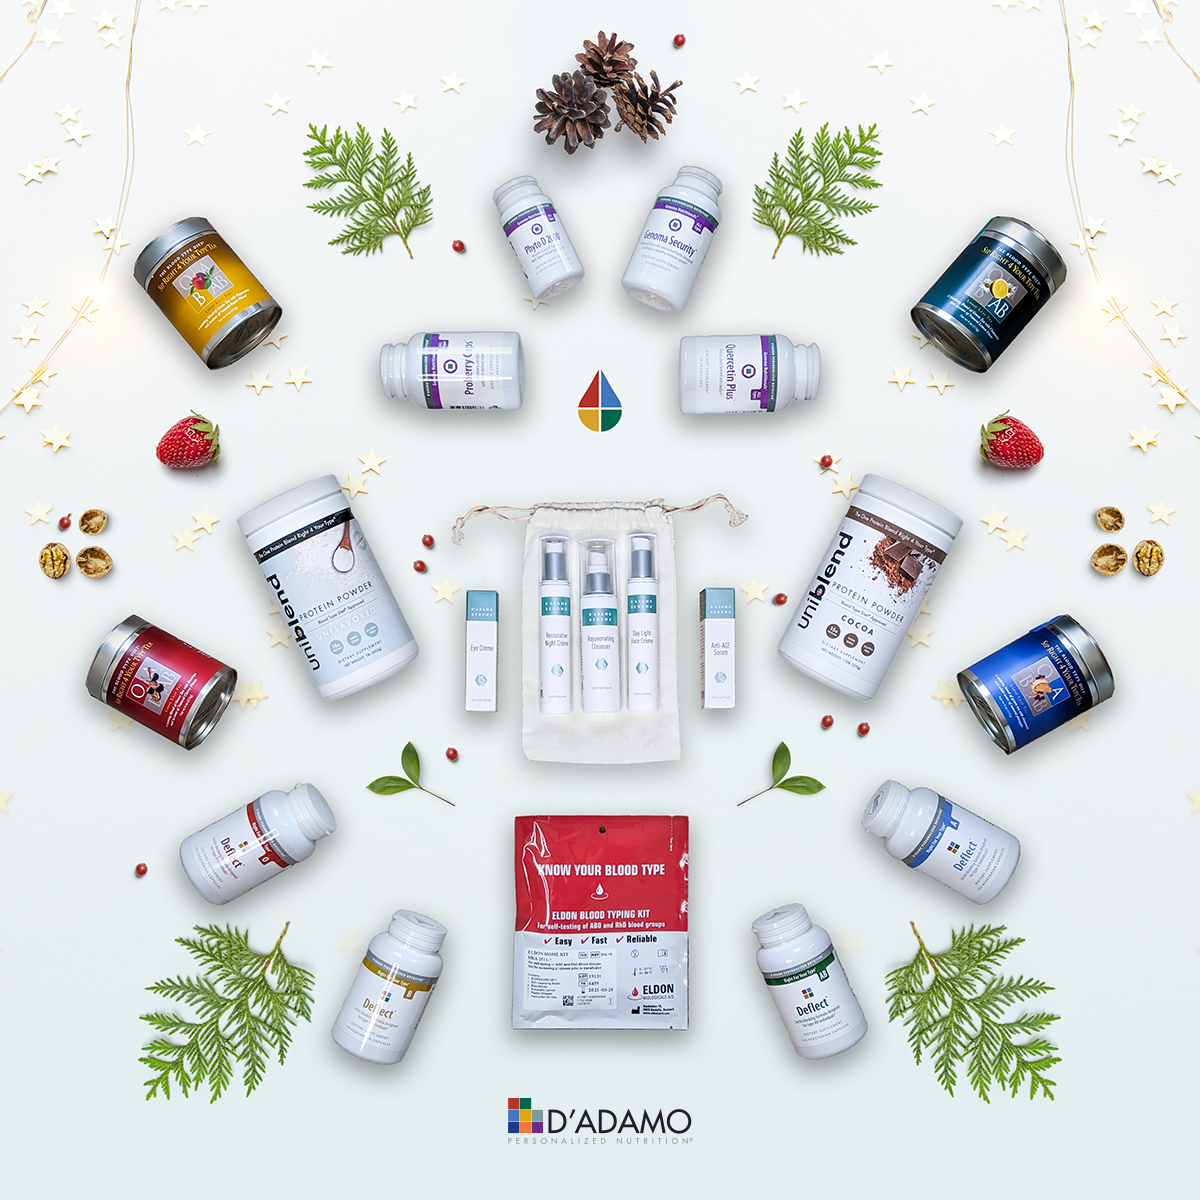 Top Health and Wellness Gifts for 2020